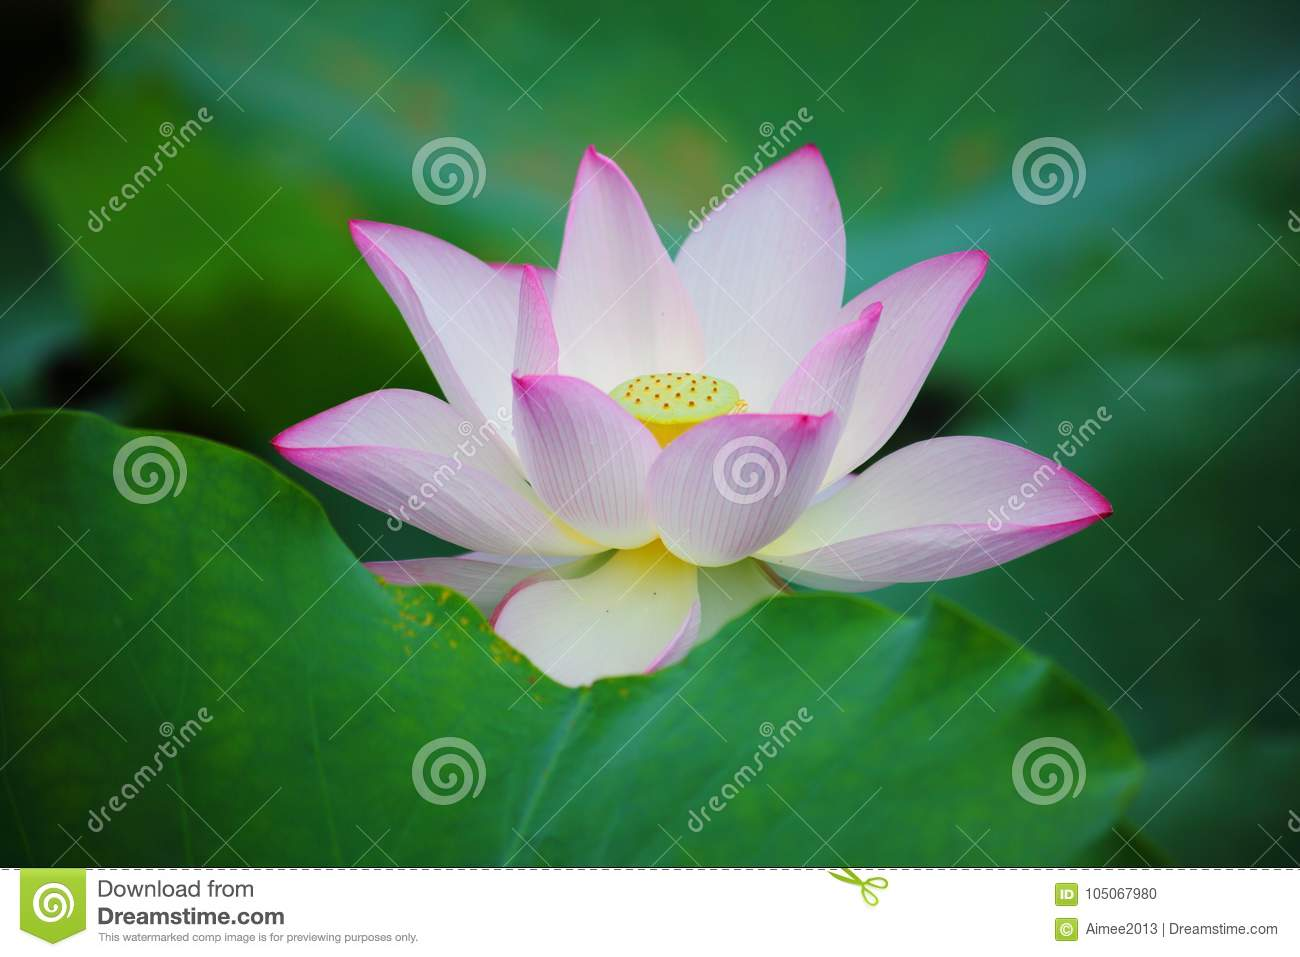 Pink lotus flower stock photo image of blossom indian 105067980 download pink lotus flower stock photo image of blossom indian 105067980 mightylinksfo